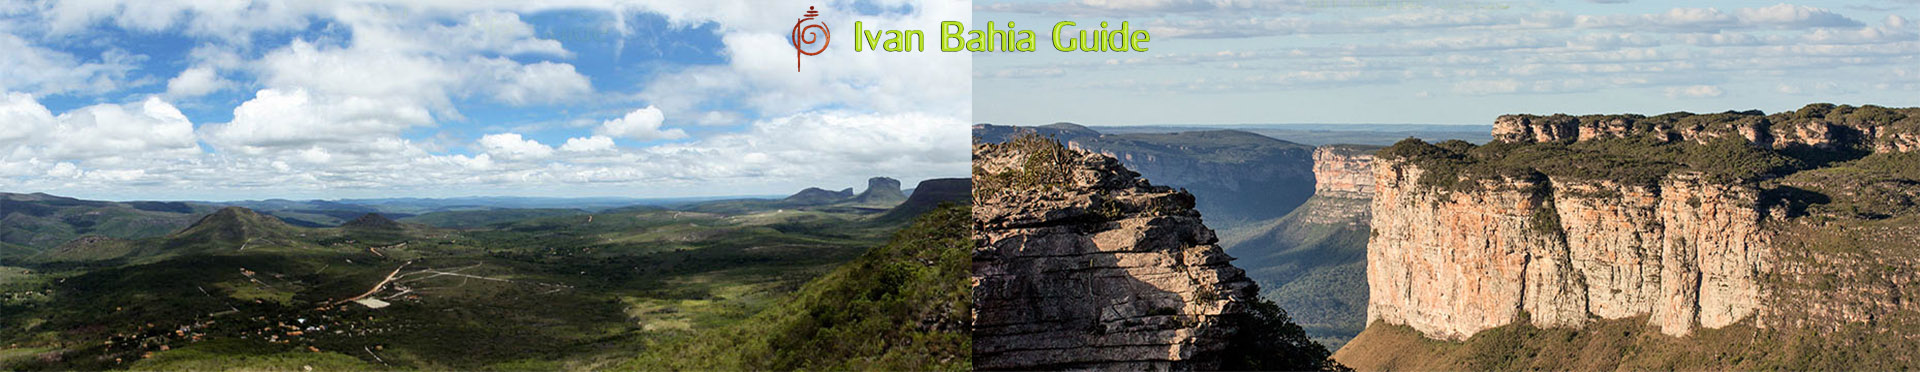 Ivan Bahia tour-guide / hiking in Chapada Diamantina National Park (aka 'the Brazilian Grand Canyon') hashtag : #ChapadaDiamantinaGuide #ChapadaDiamantina #ChapadaDiamantinaTrekking #BahiaMetisse #ToursByLocals #fernandobingretourguide #IBG #FotosBahia #DiamantinaMountains #IvanBahiaReizen #IvanChapadaDiamantinaGuide #ValeDoPati #PatiValey #ValeDoCapao #Trajano #Zentur #chapadatrekking #TrilhasDiamantina #morodopaiinacio #lencois #poçoazul #ecoturismo